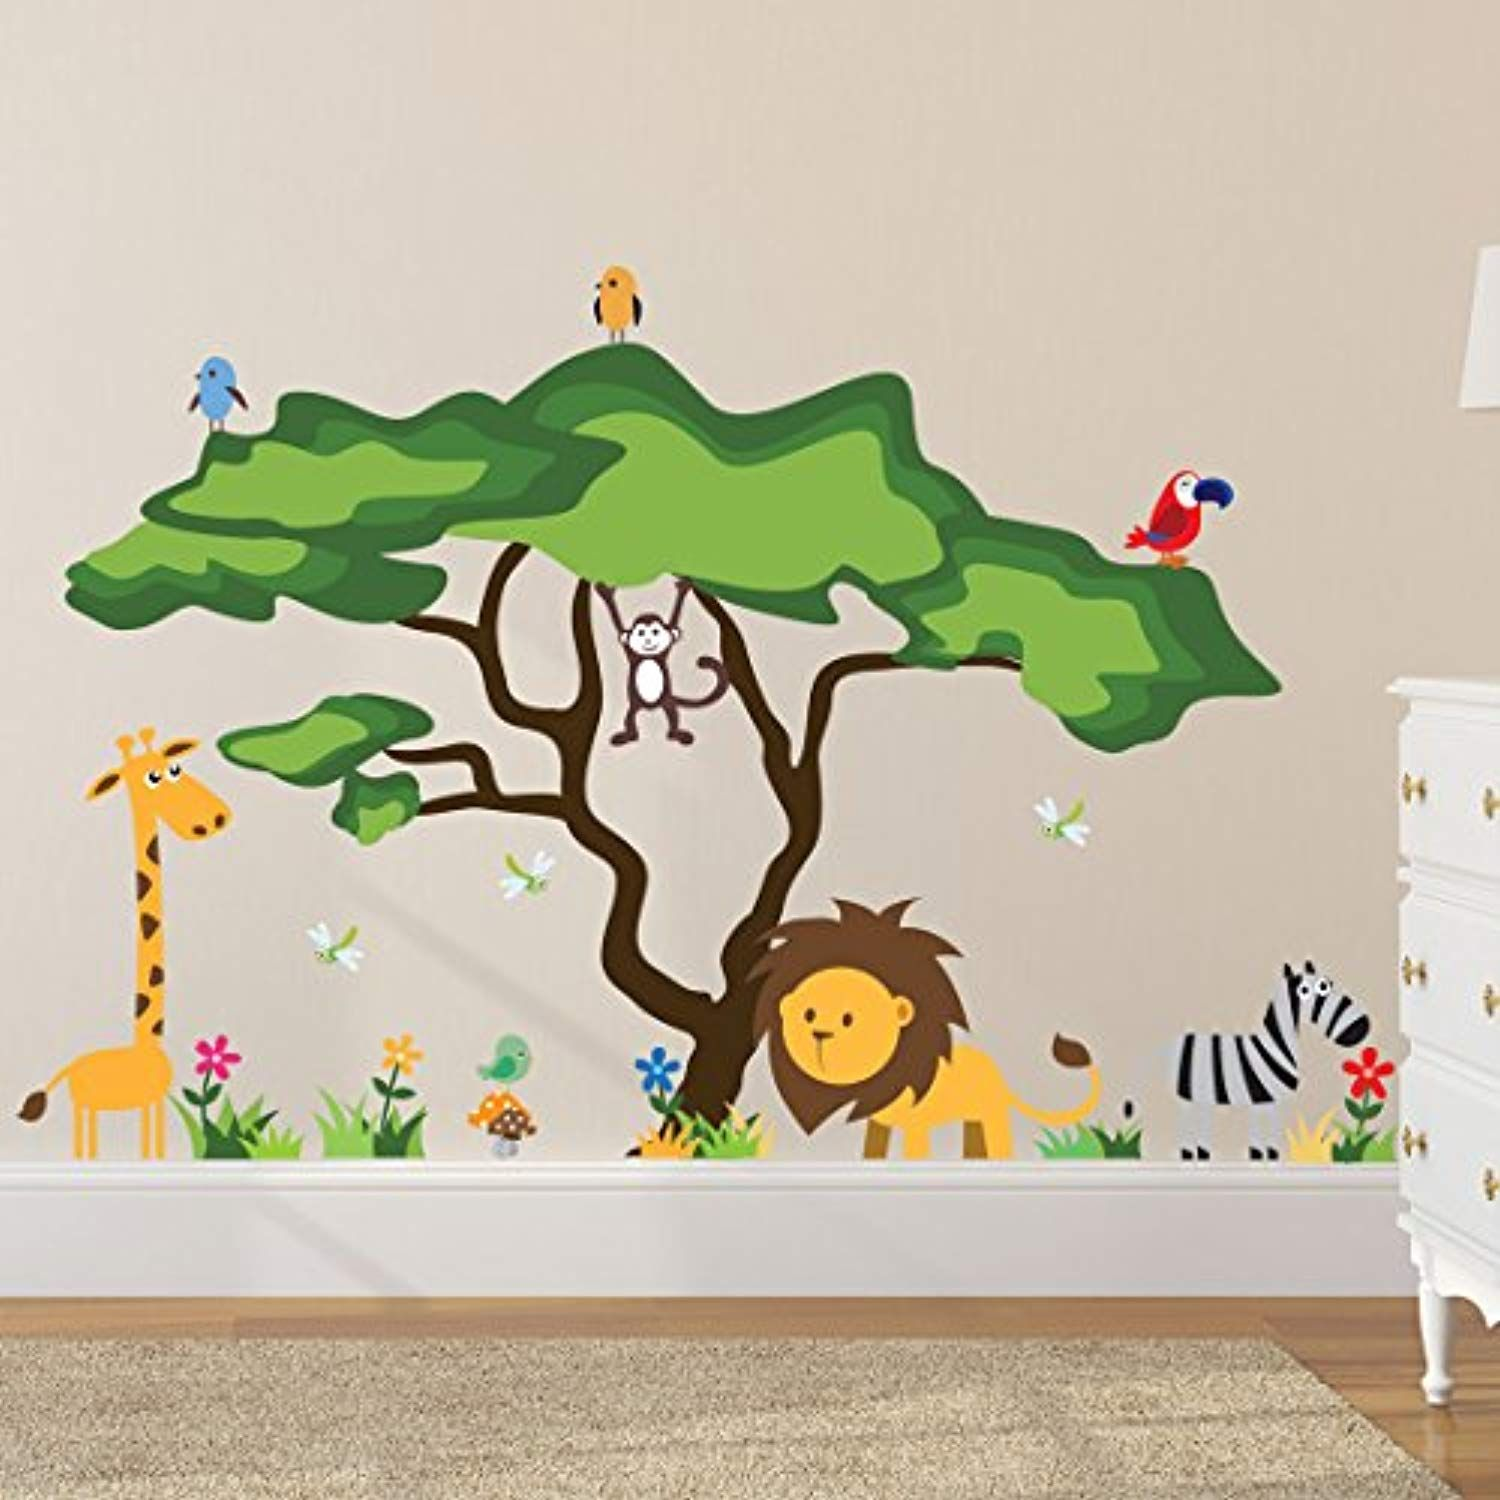 Timber Artbox Cute Animals In The Jungle Wall Decals Giant